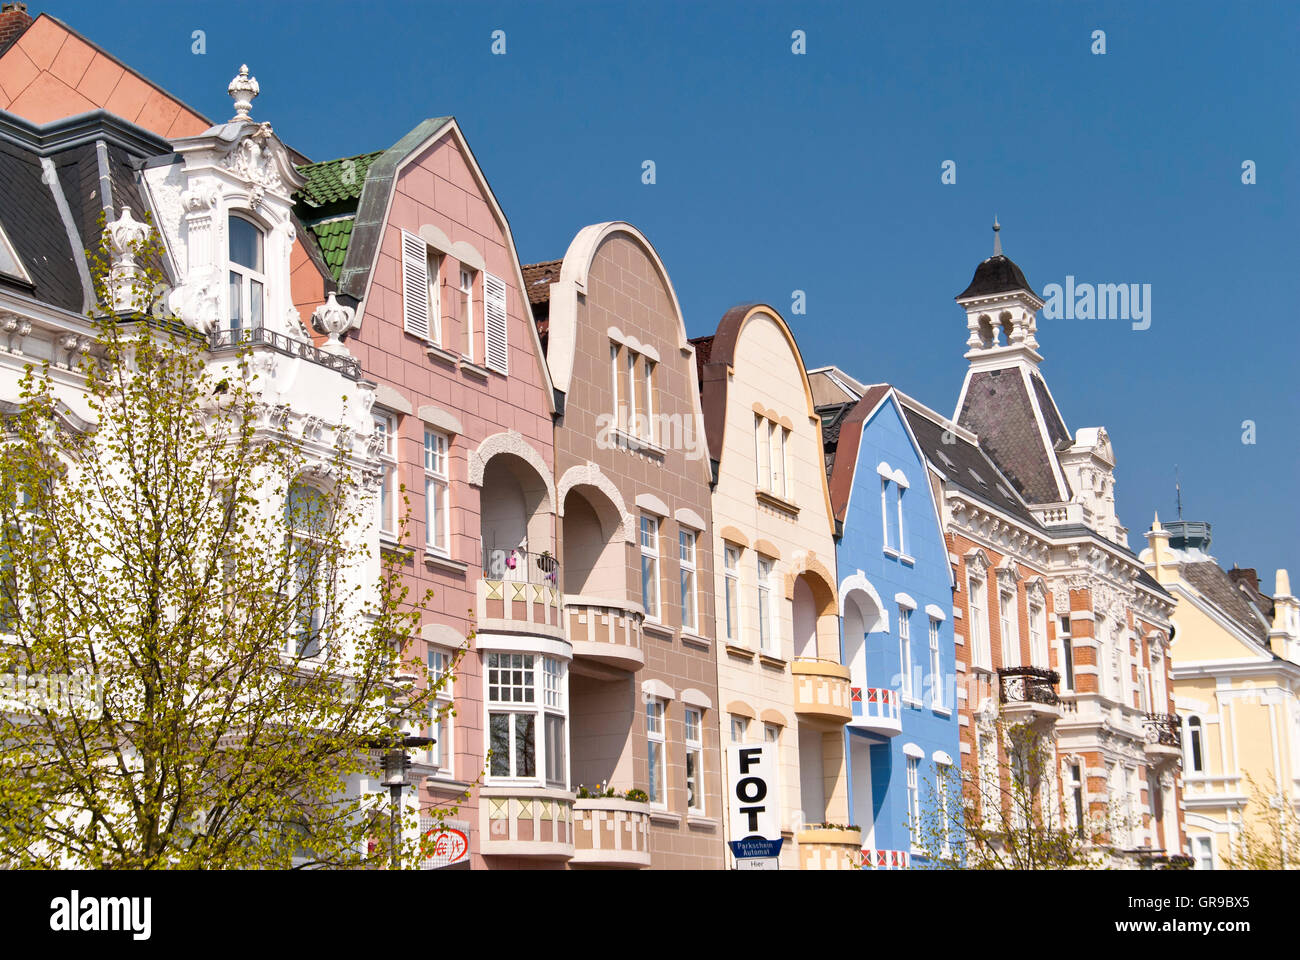 Cuxhaven In Germany - Stock Image